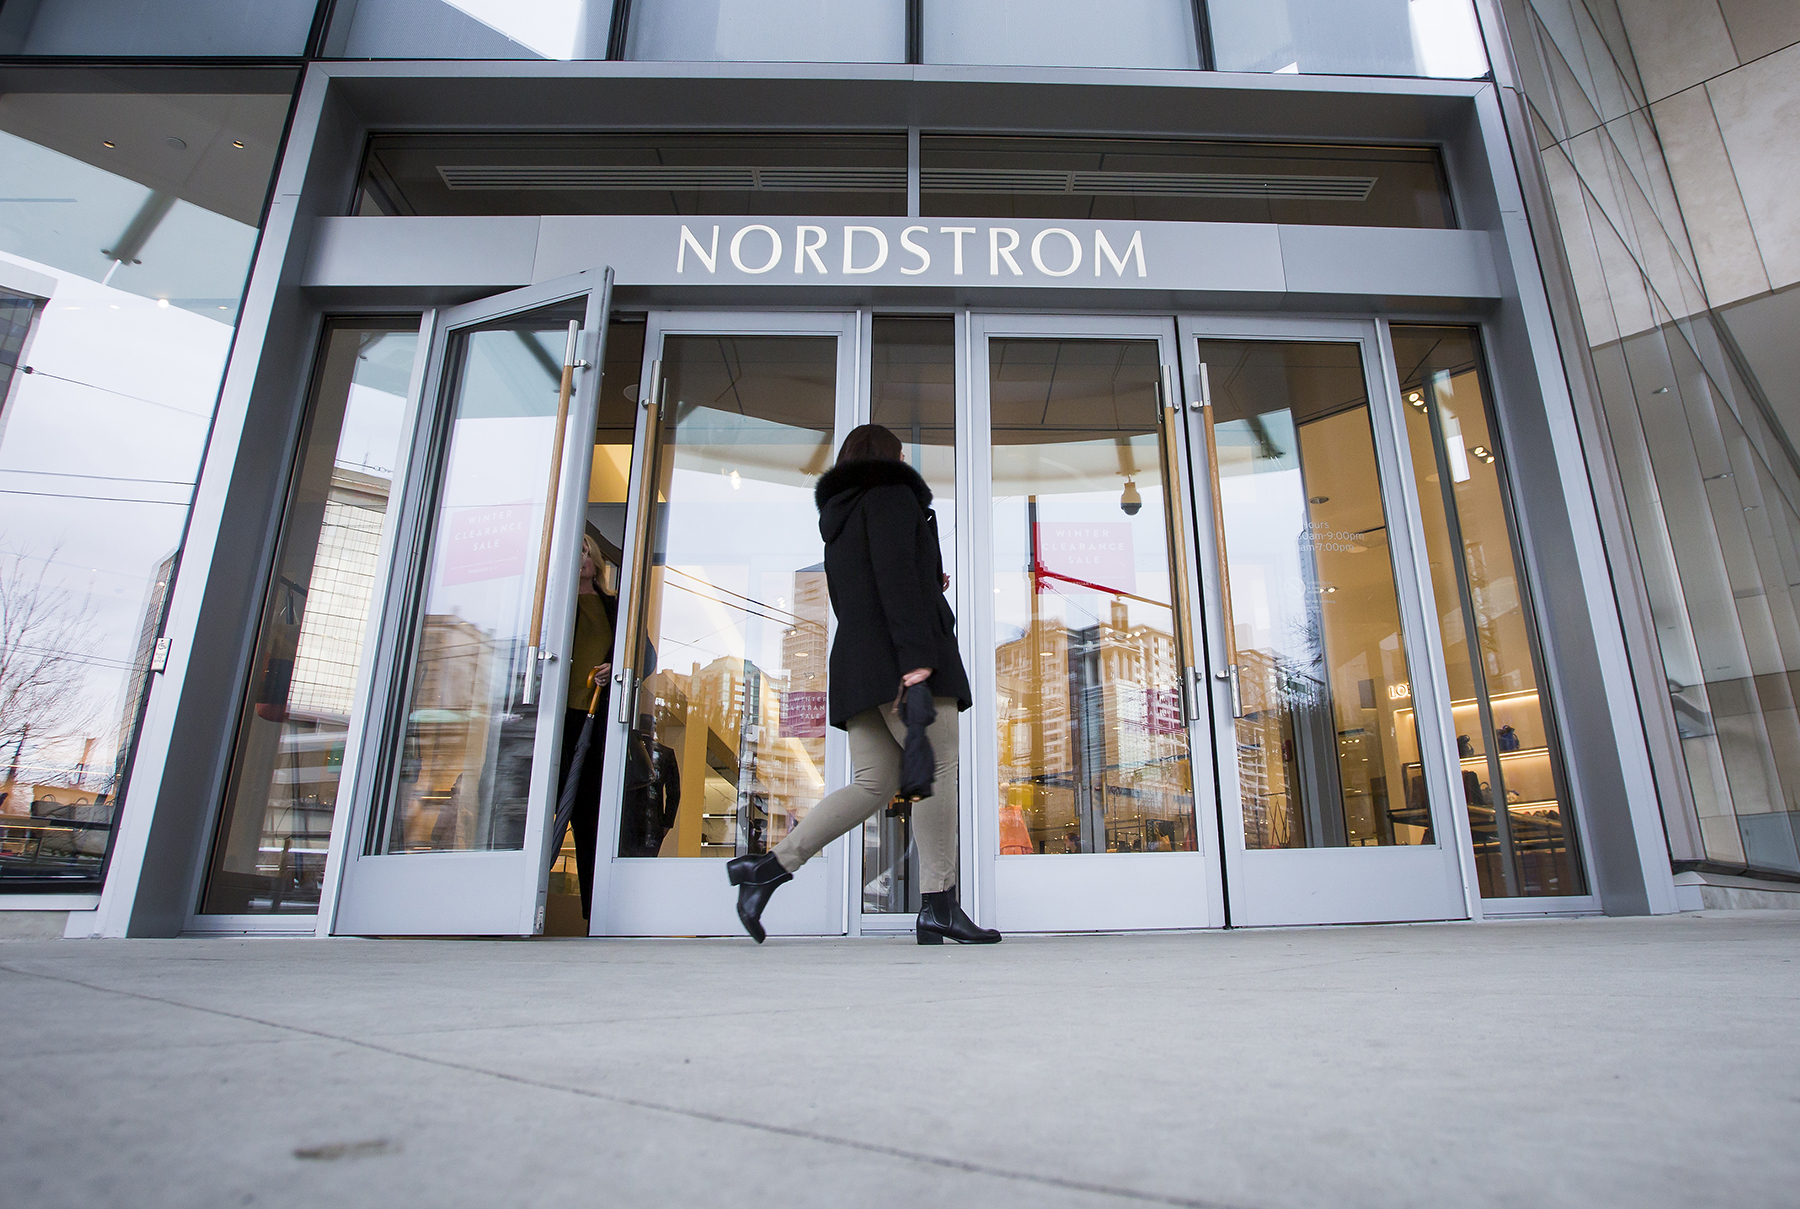 Nordstrom store